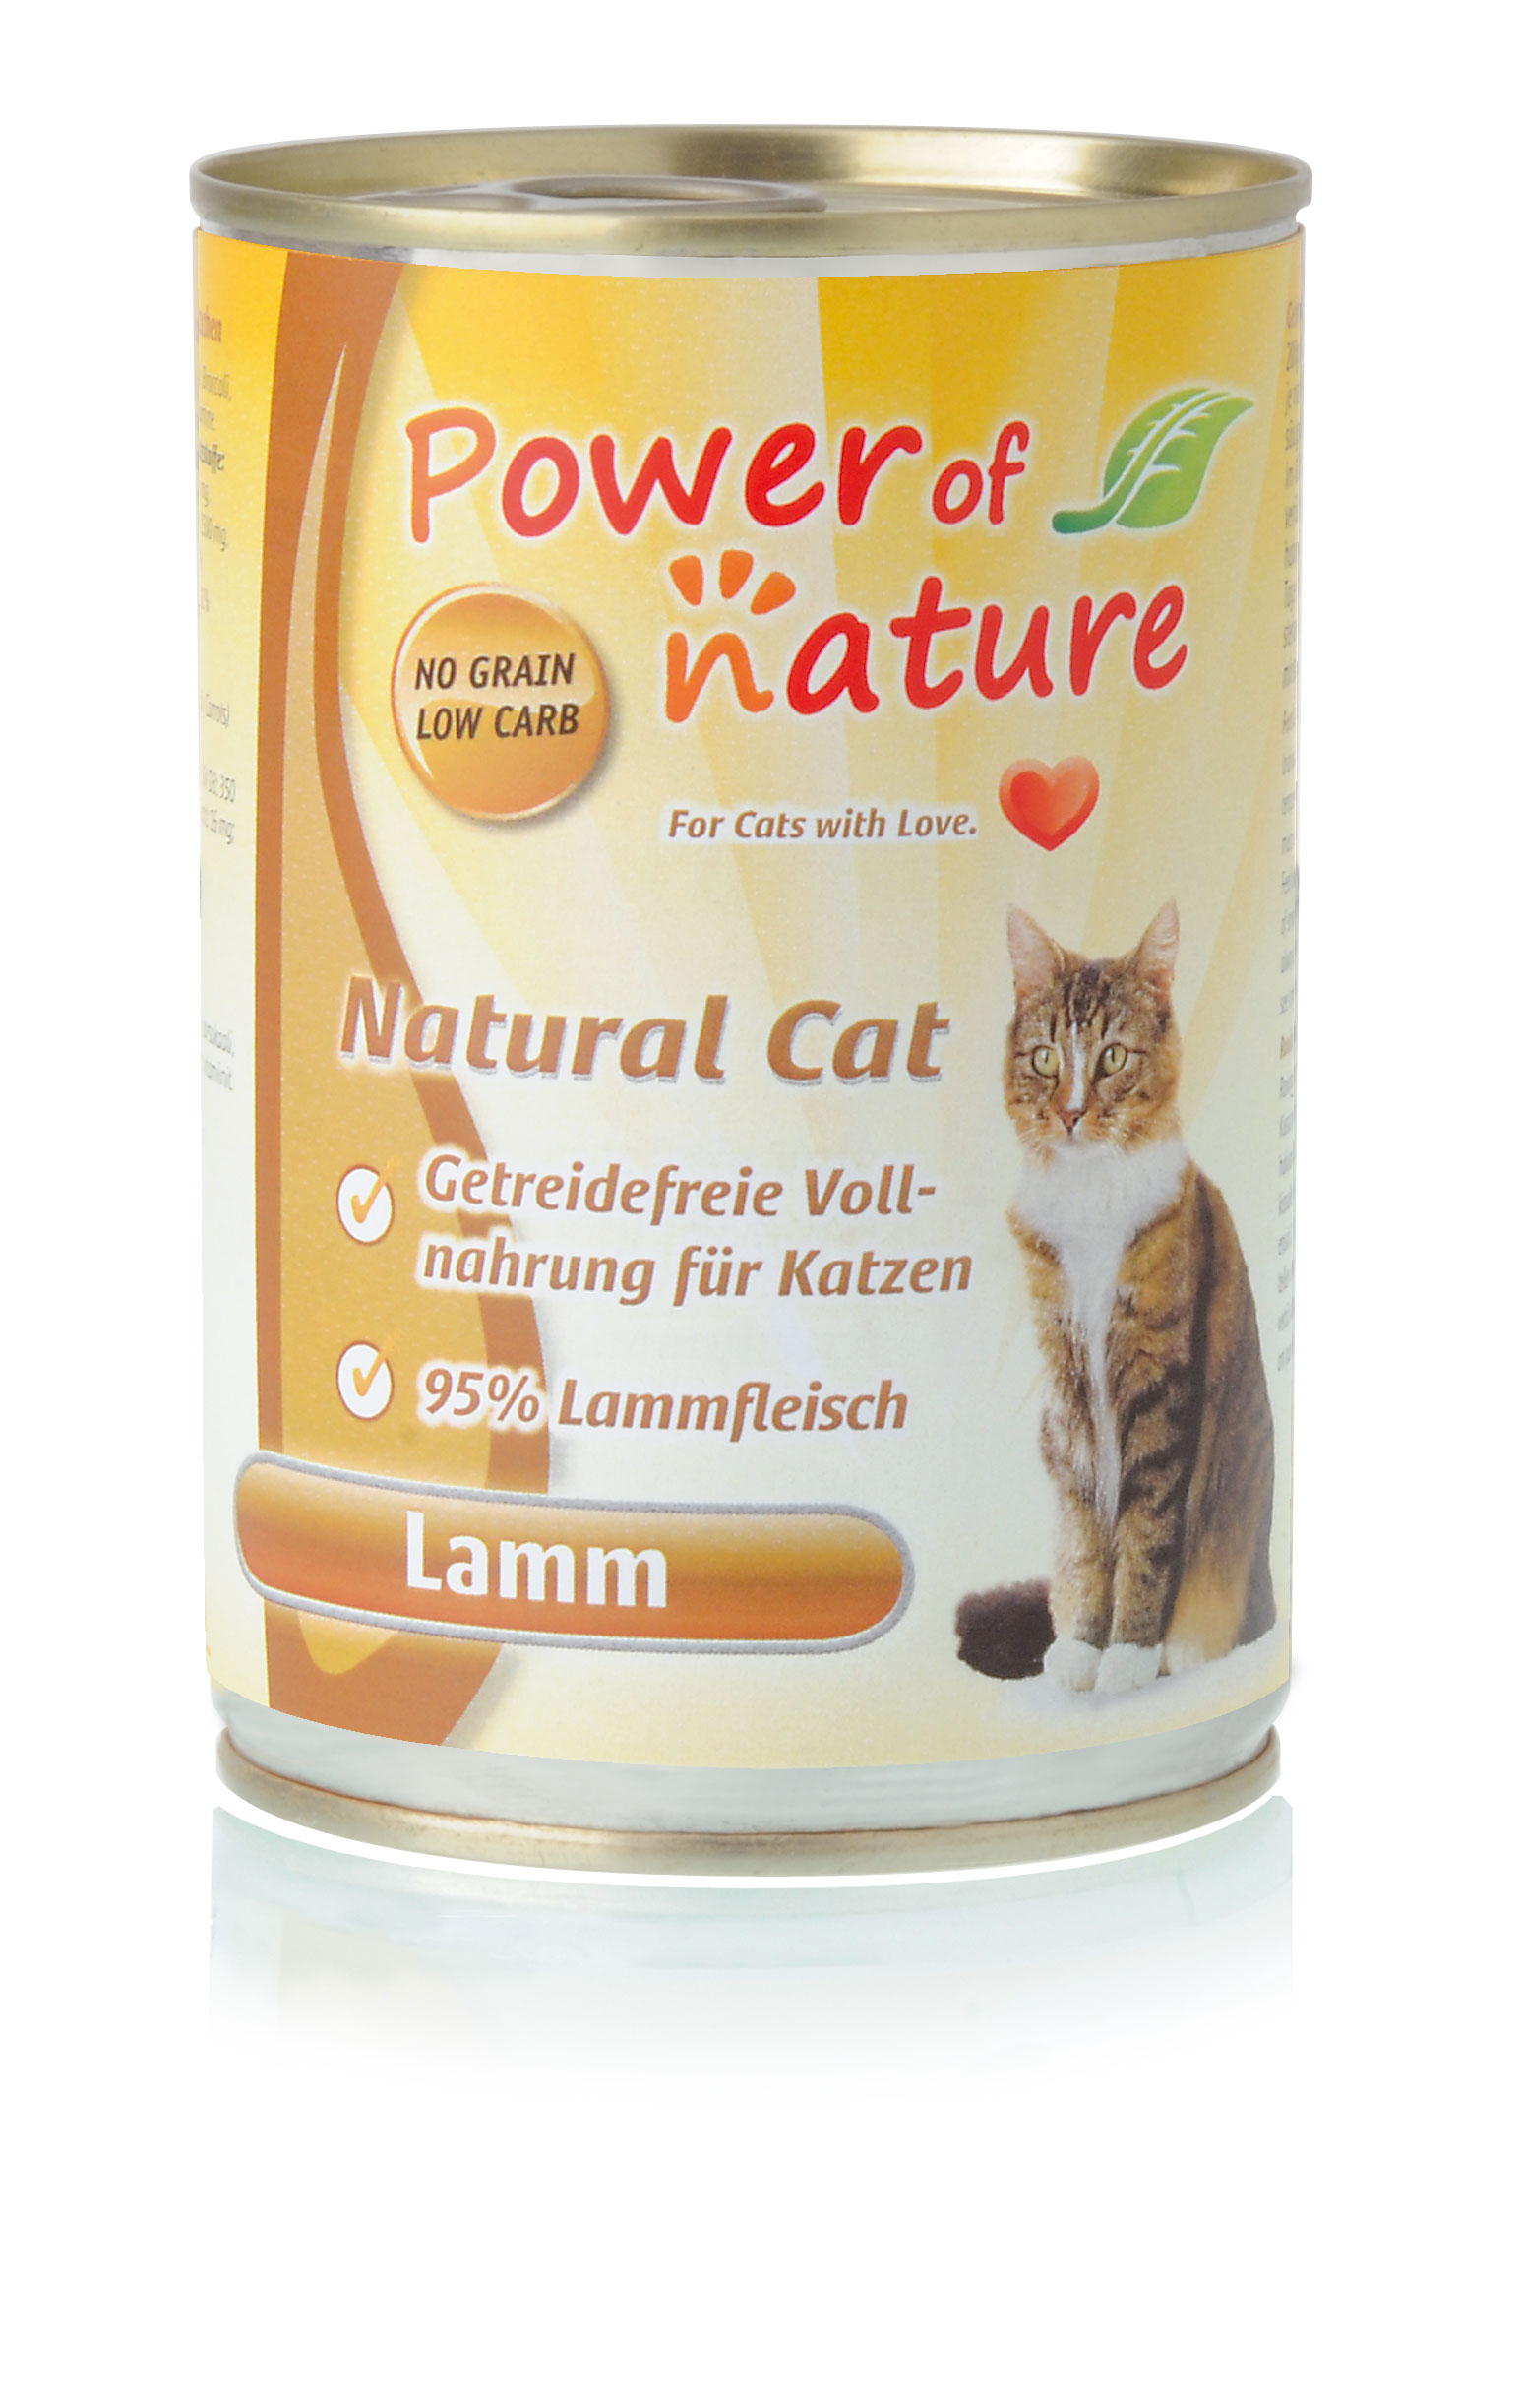 Power of Nature Natural Cat Dose Lamm 400g